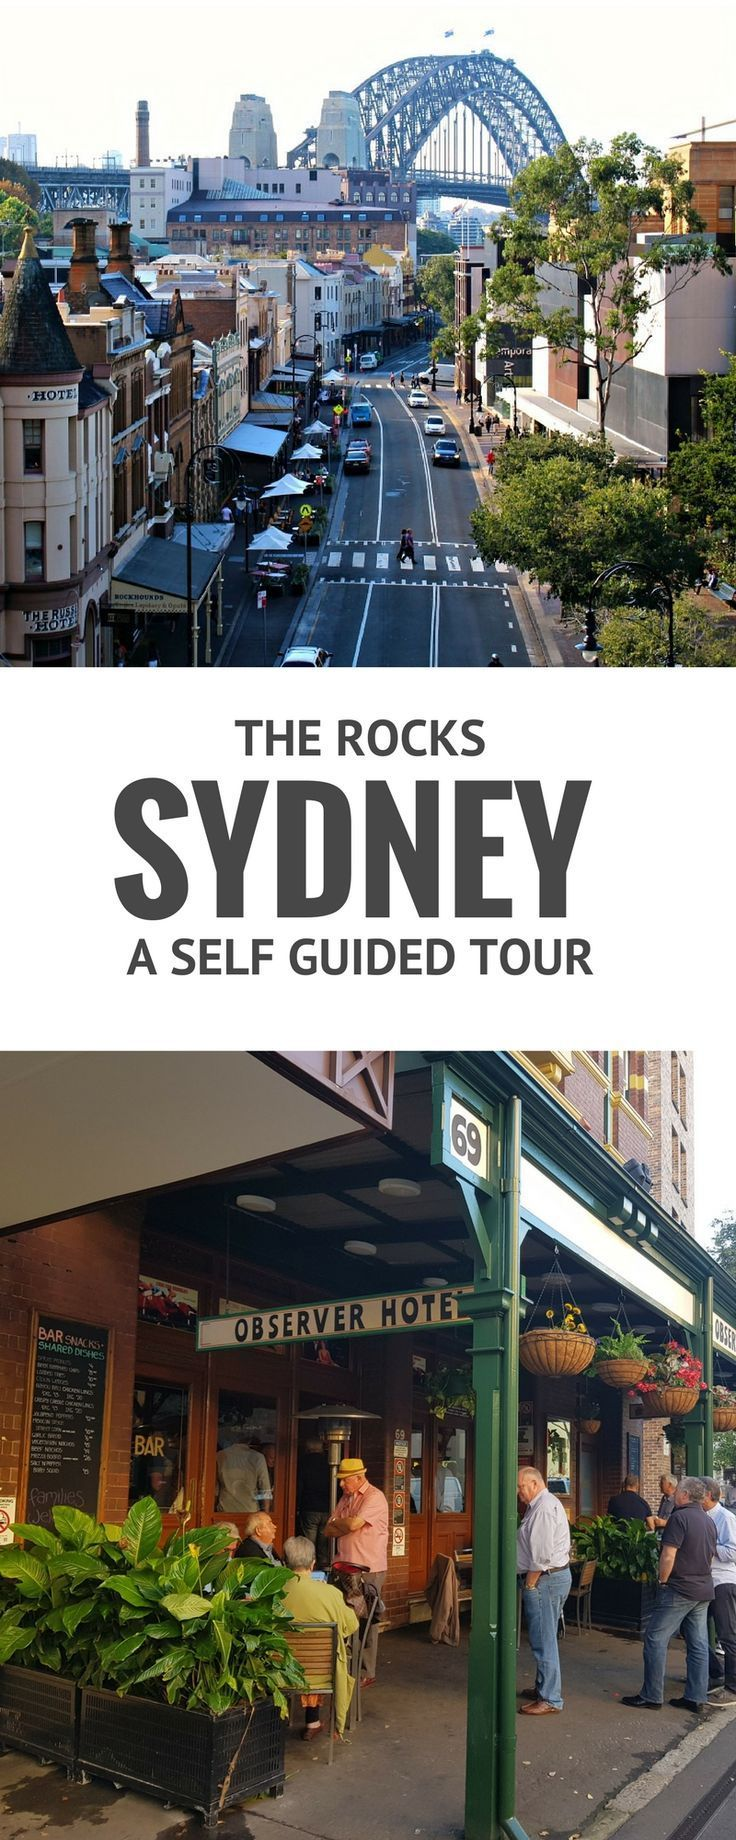 Take a 2 hour self guided tour of the Rocks in Sydney with this easy to follow guide. It's one of my favorite things to do in Sydney and best of all it's free!